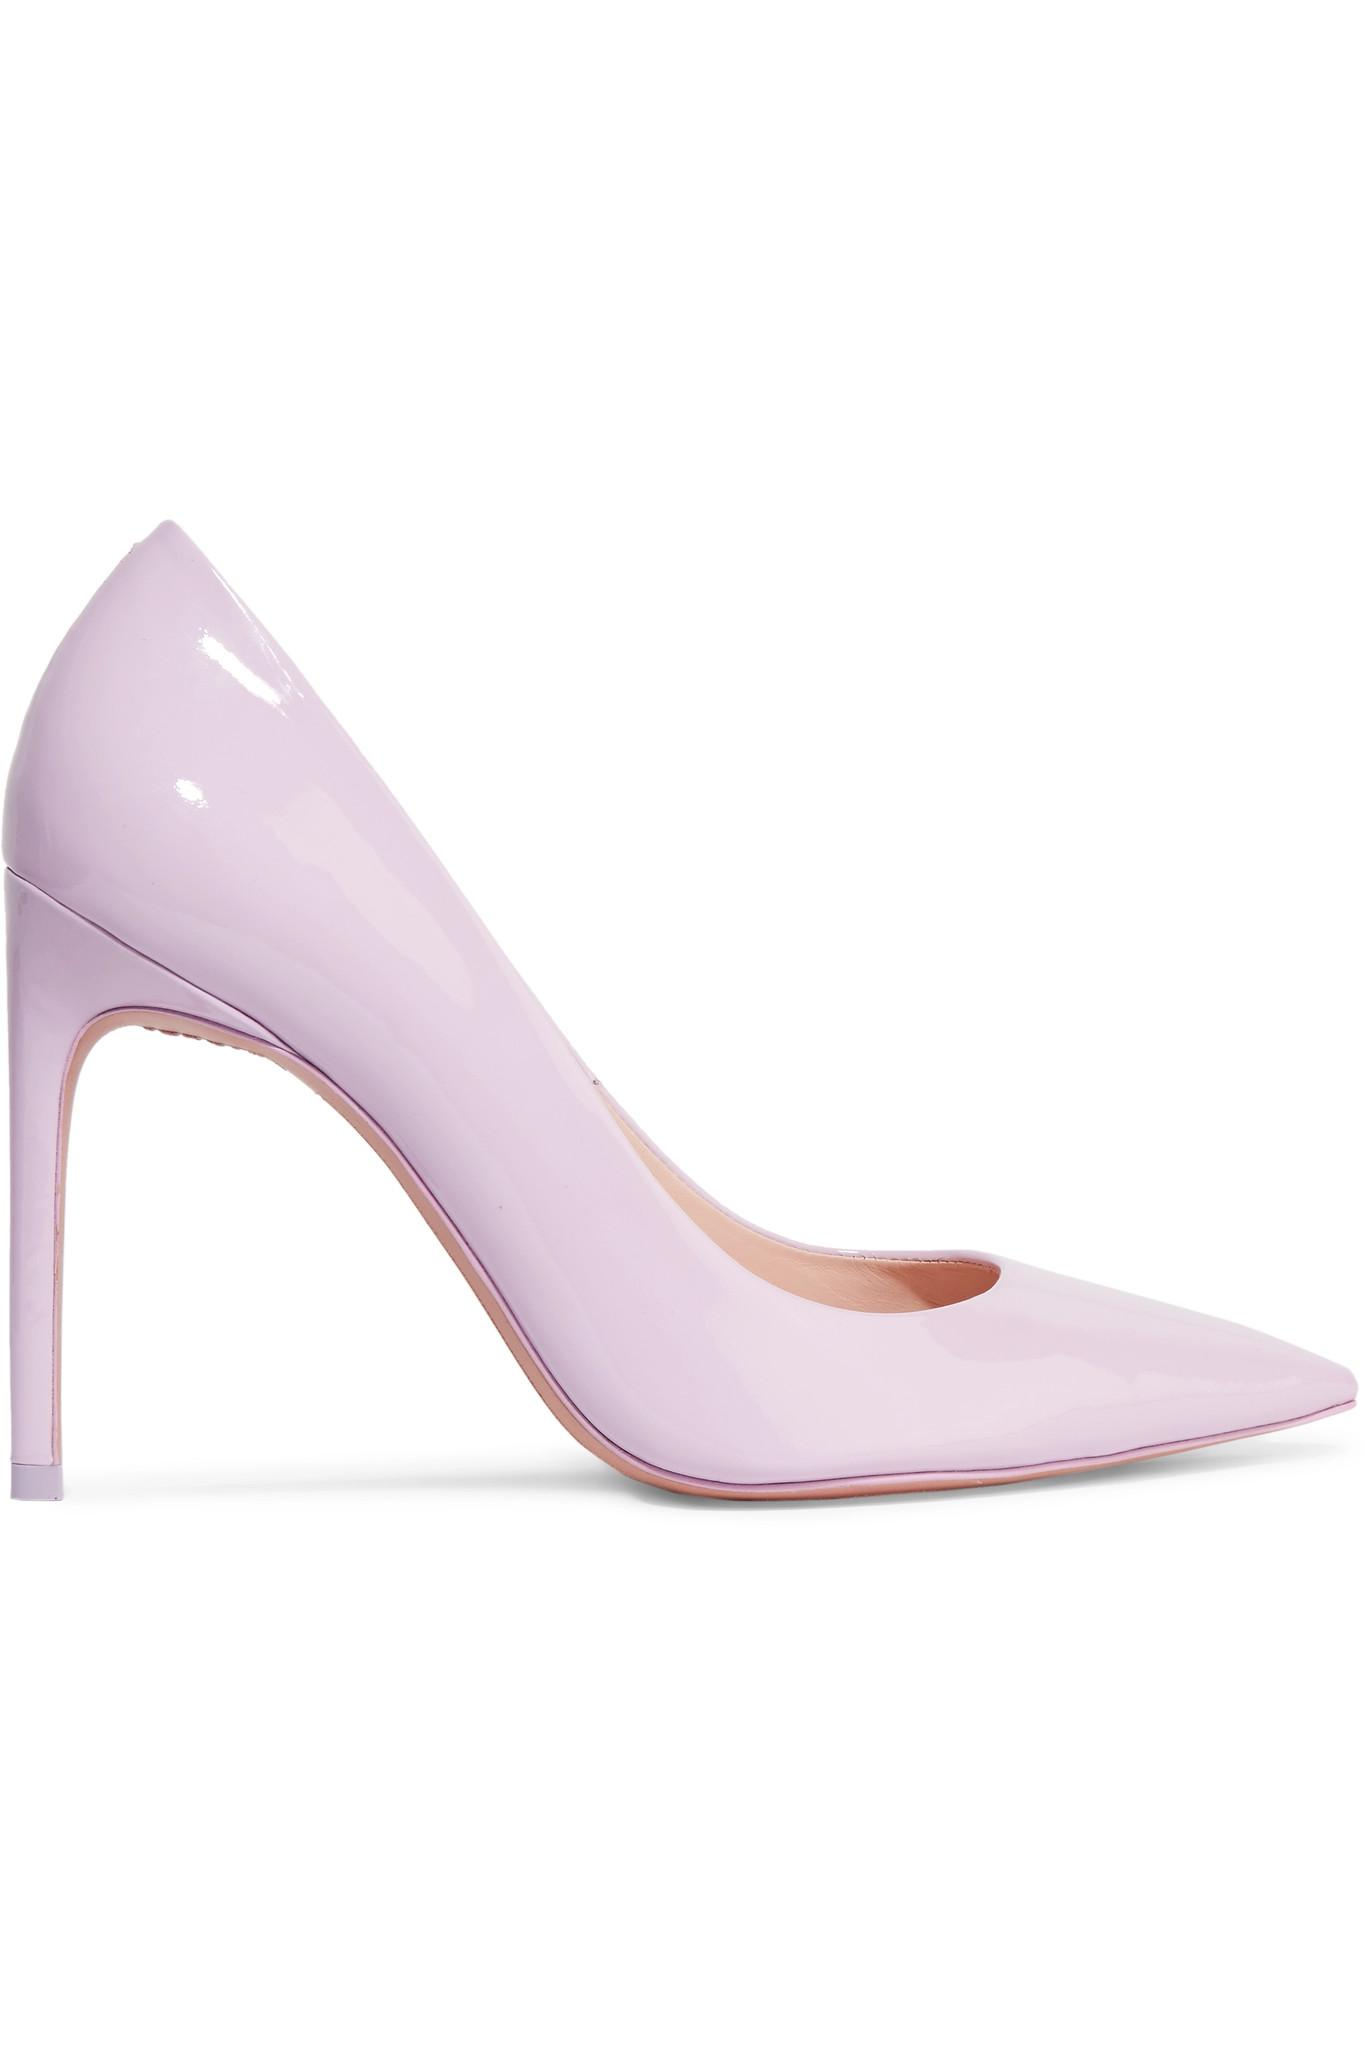 df67f04e9c5 Lyst - Sophia Webster Rio Patent-leather Pumps in Pink